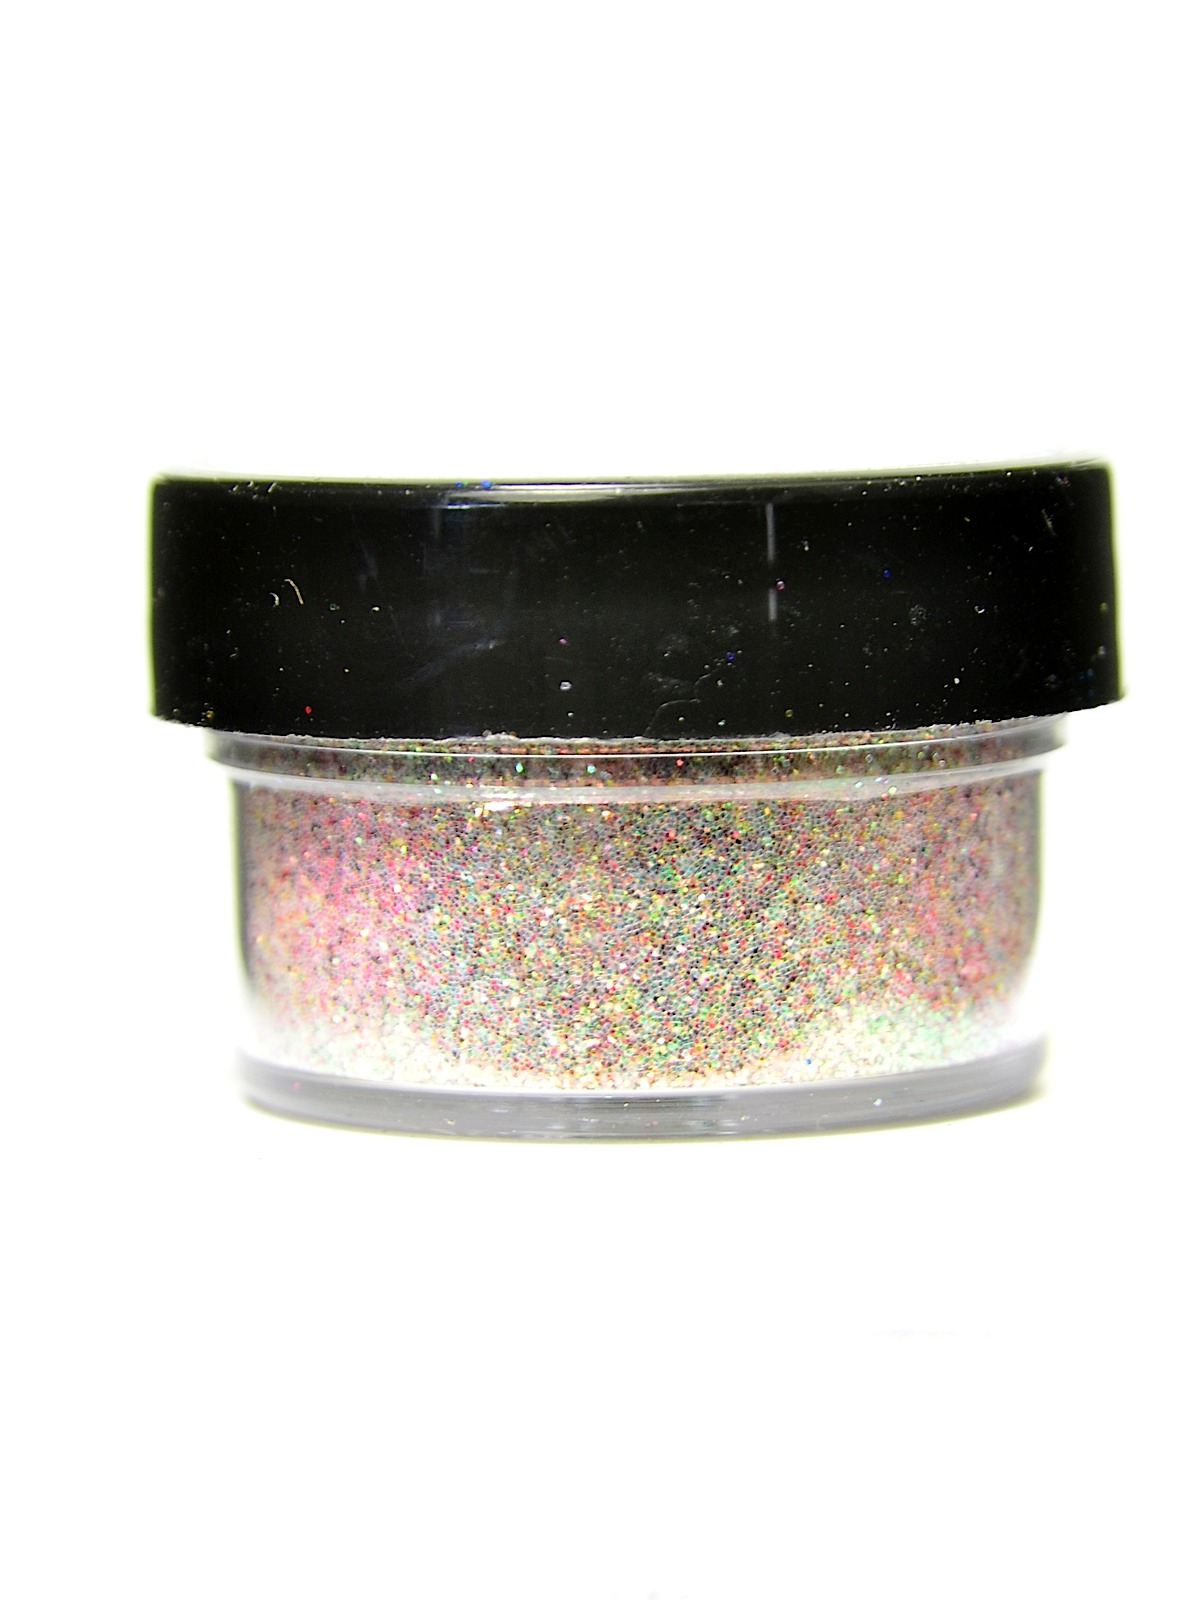 Ultrafine Transparent Glitter Fauna 1 2 Oz. Jar